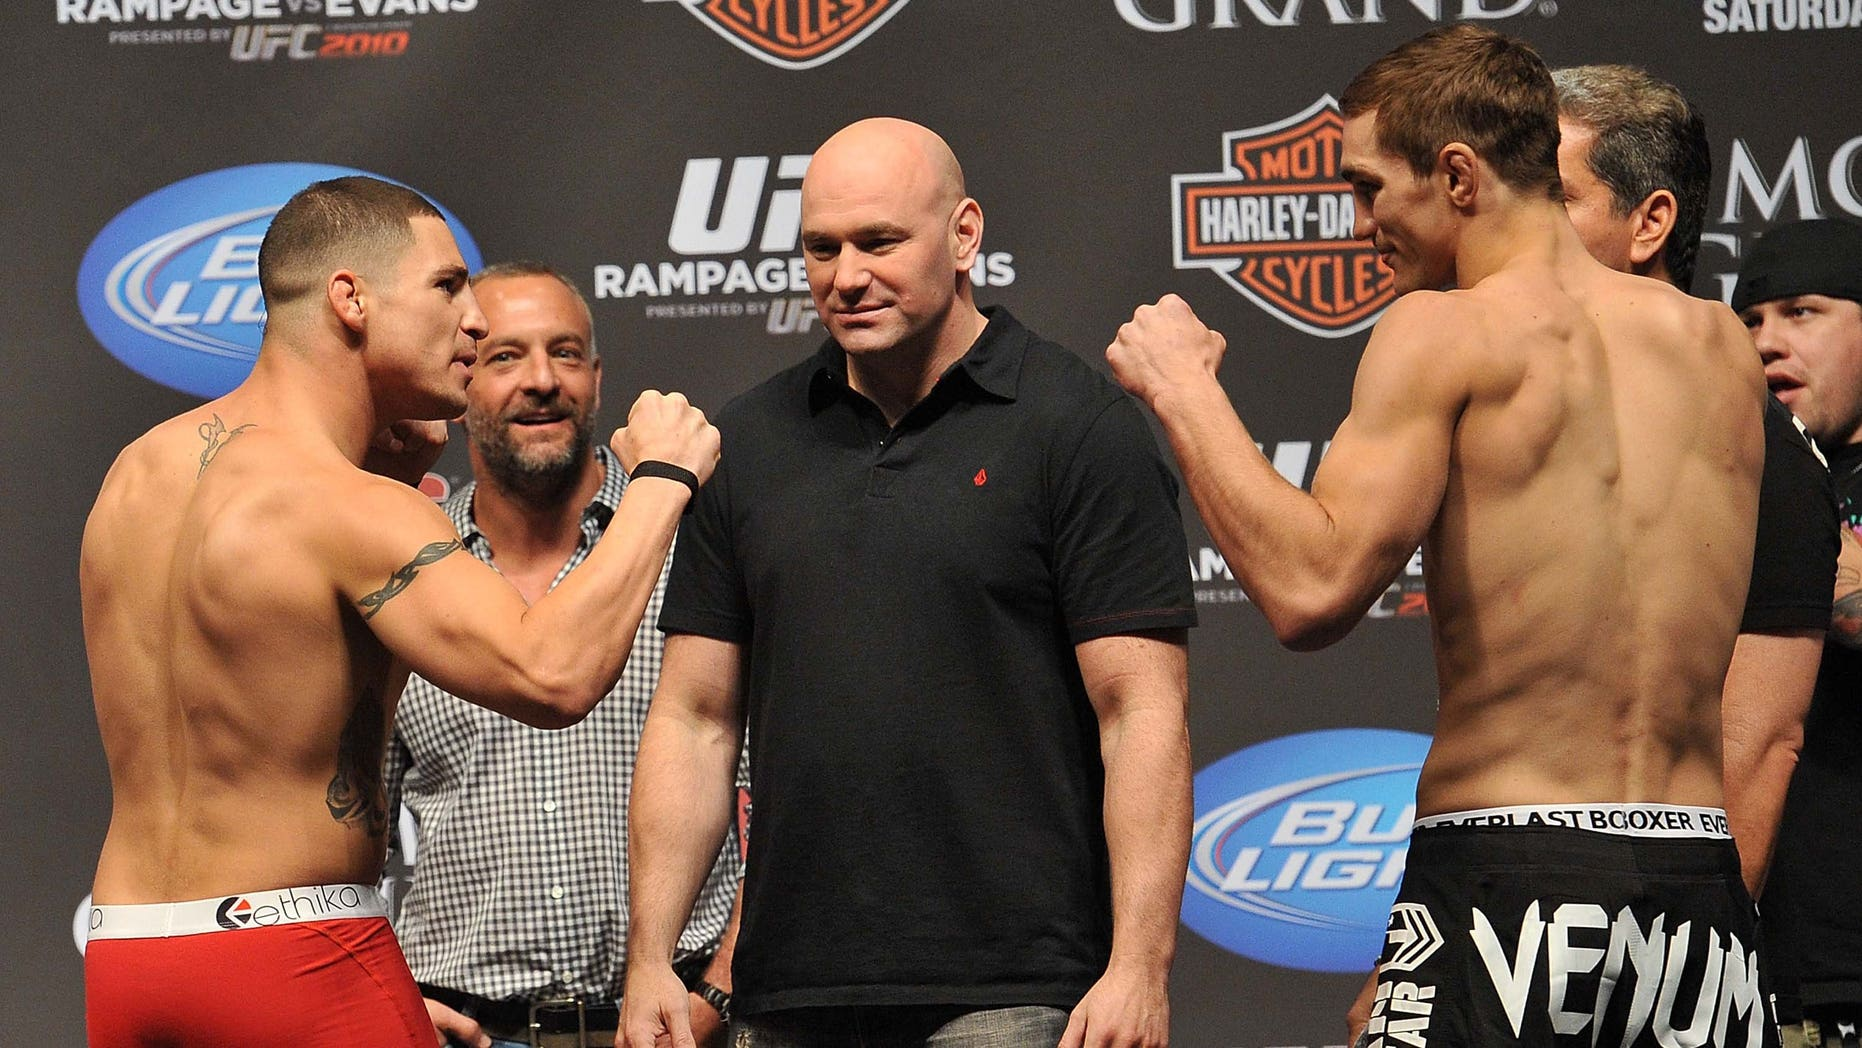 LAS VEGAS - MAY 28: UFC fighter Diego Sanchez (L) faces off against UFC fighter John Hathaway (R) at UFC 114: Rampage versus Rashad at the Mandalay Bay Hotel on May 28, 2010 in Las Vegas, Nevada. (Photo by Jon Kopaloff/Getty Images)